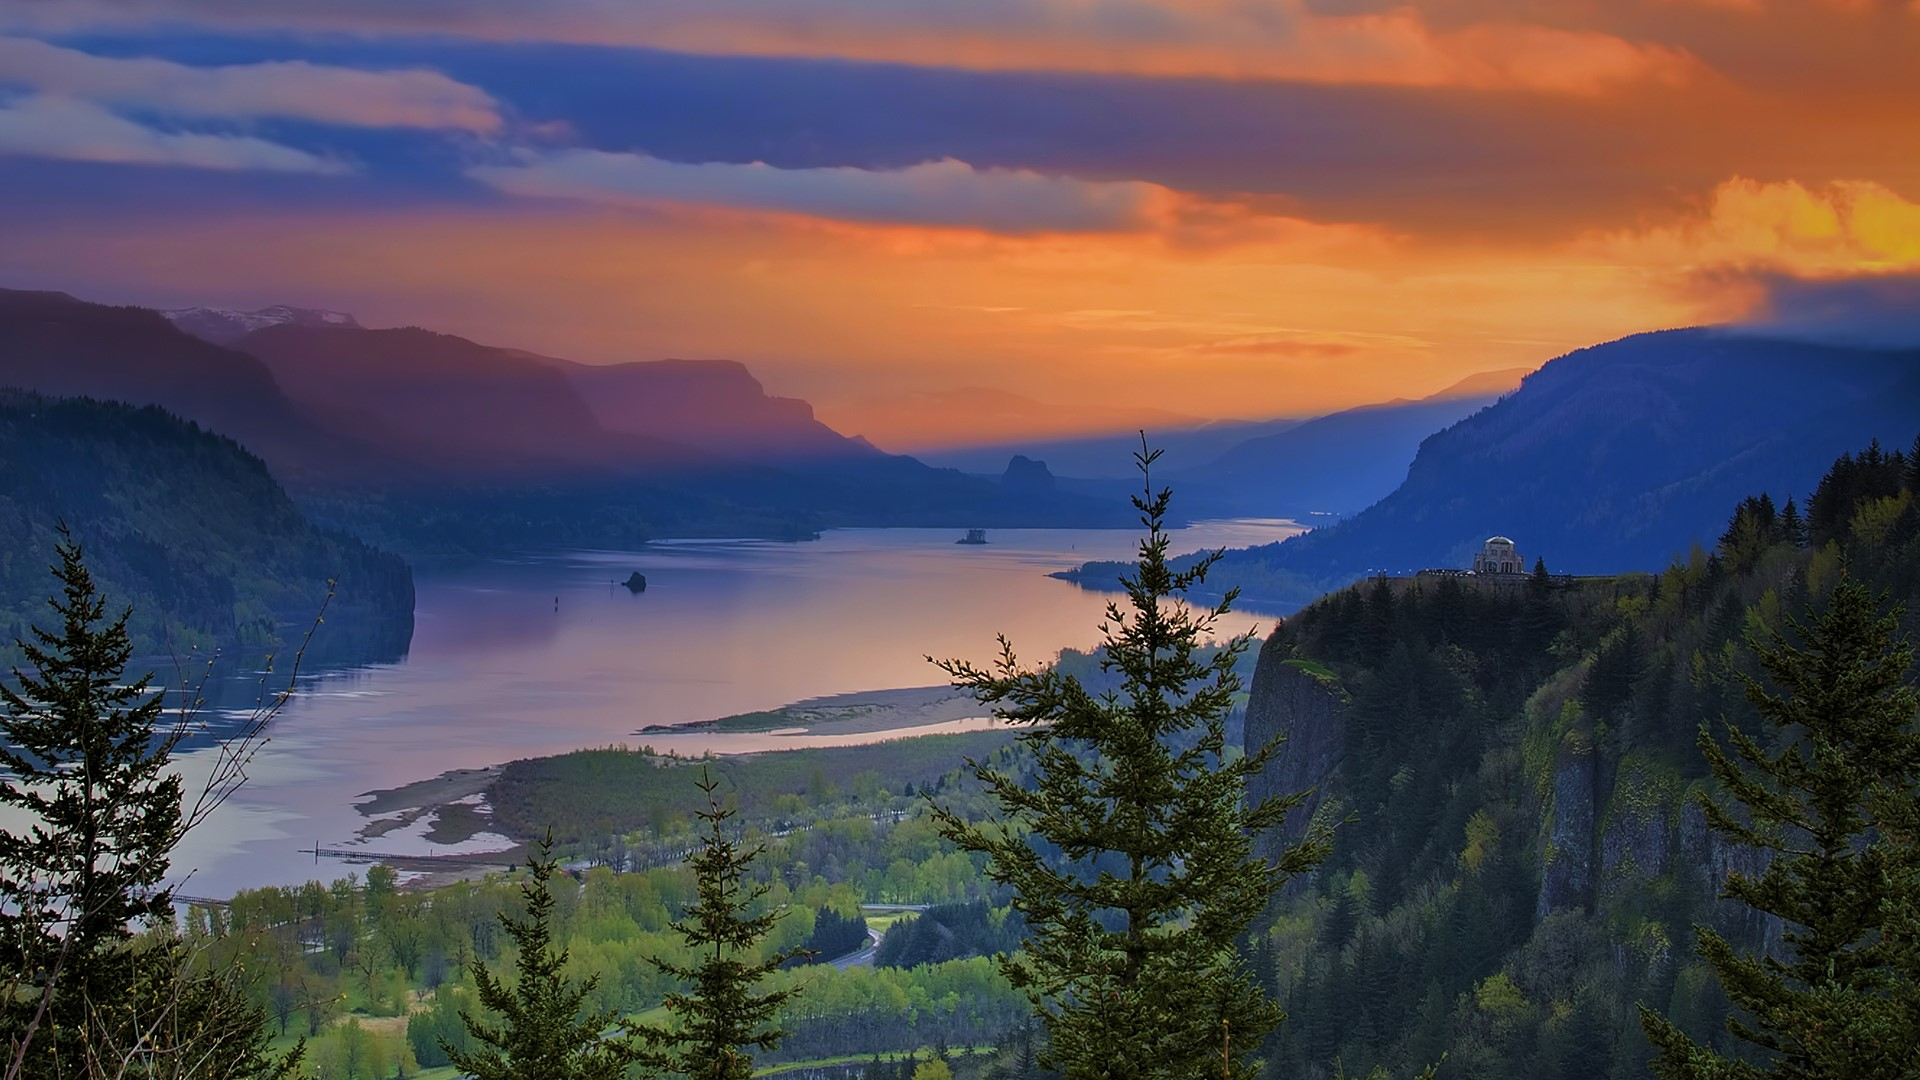 General 1920x1080 nature landscape mountains trees clouds river sky sunset Oregon USA gorge The Columbia River Gorge